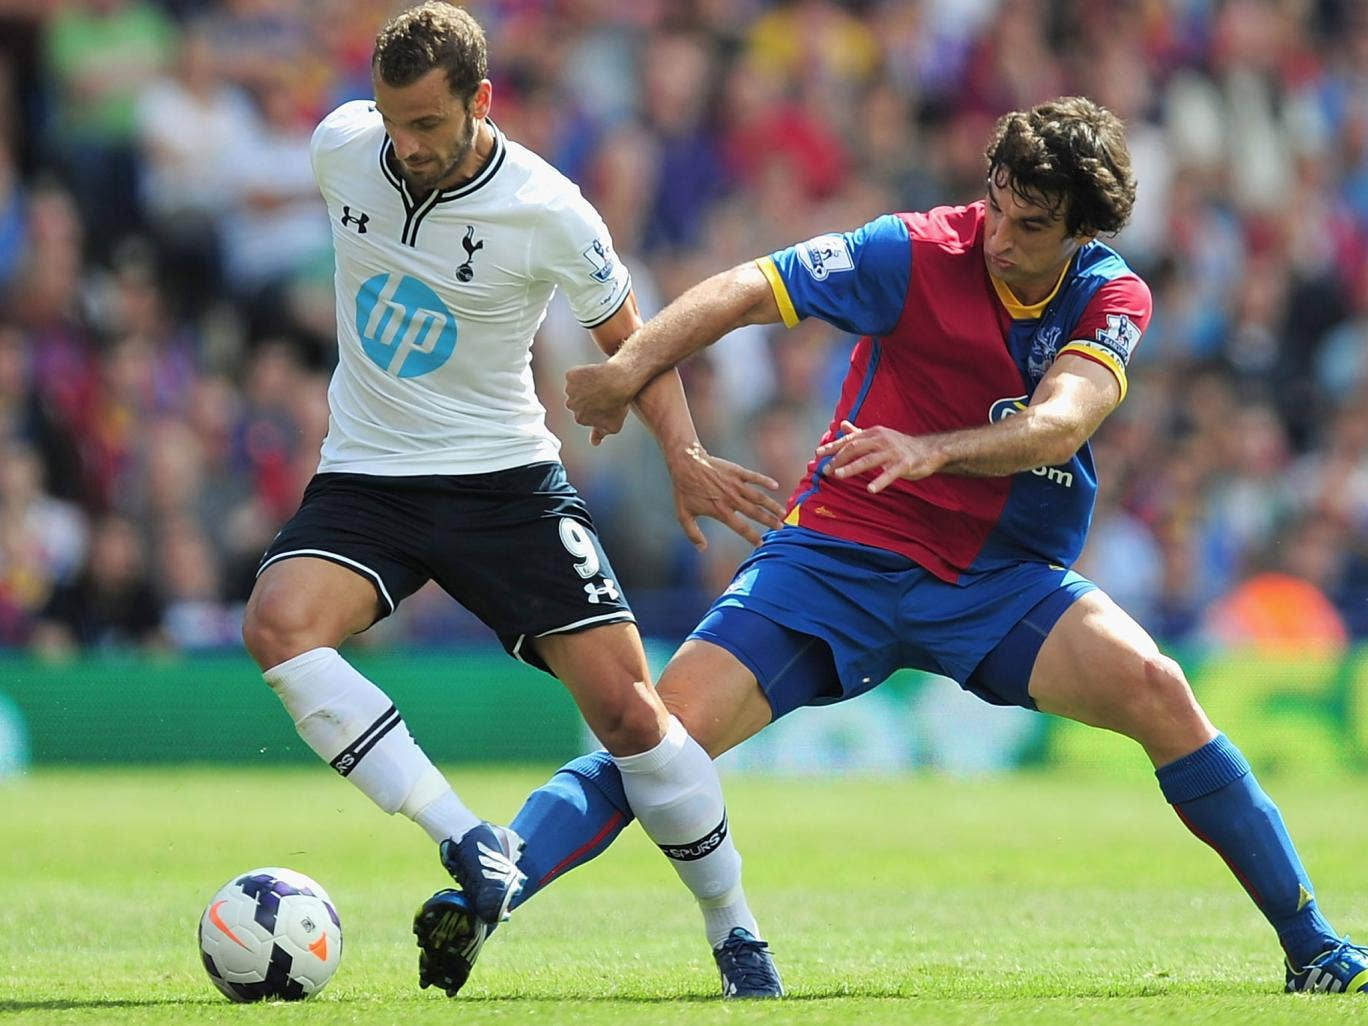 Roberto Soldado opened the scoring on his Tottenham debut with a penalty in the 50th minute